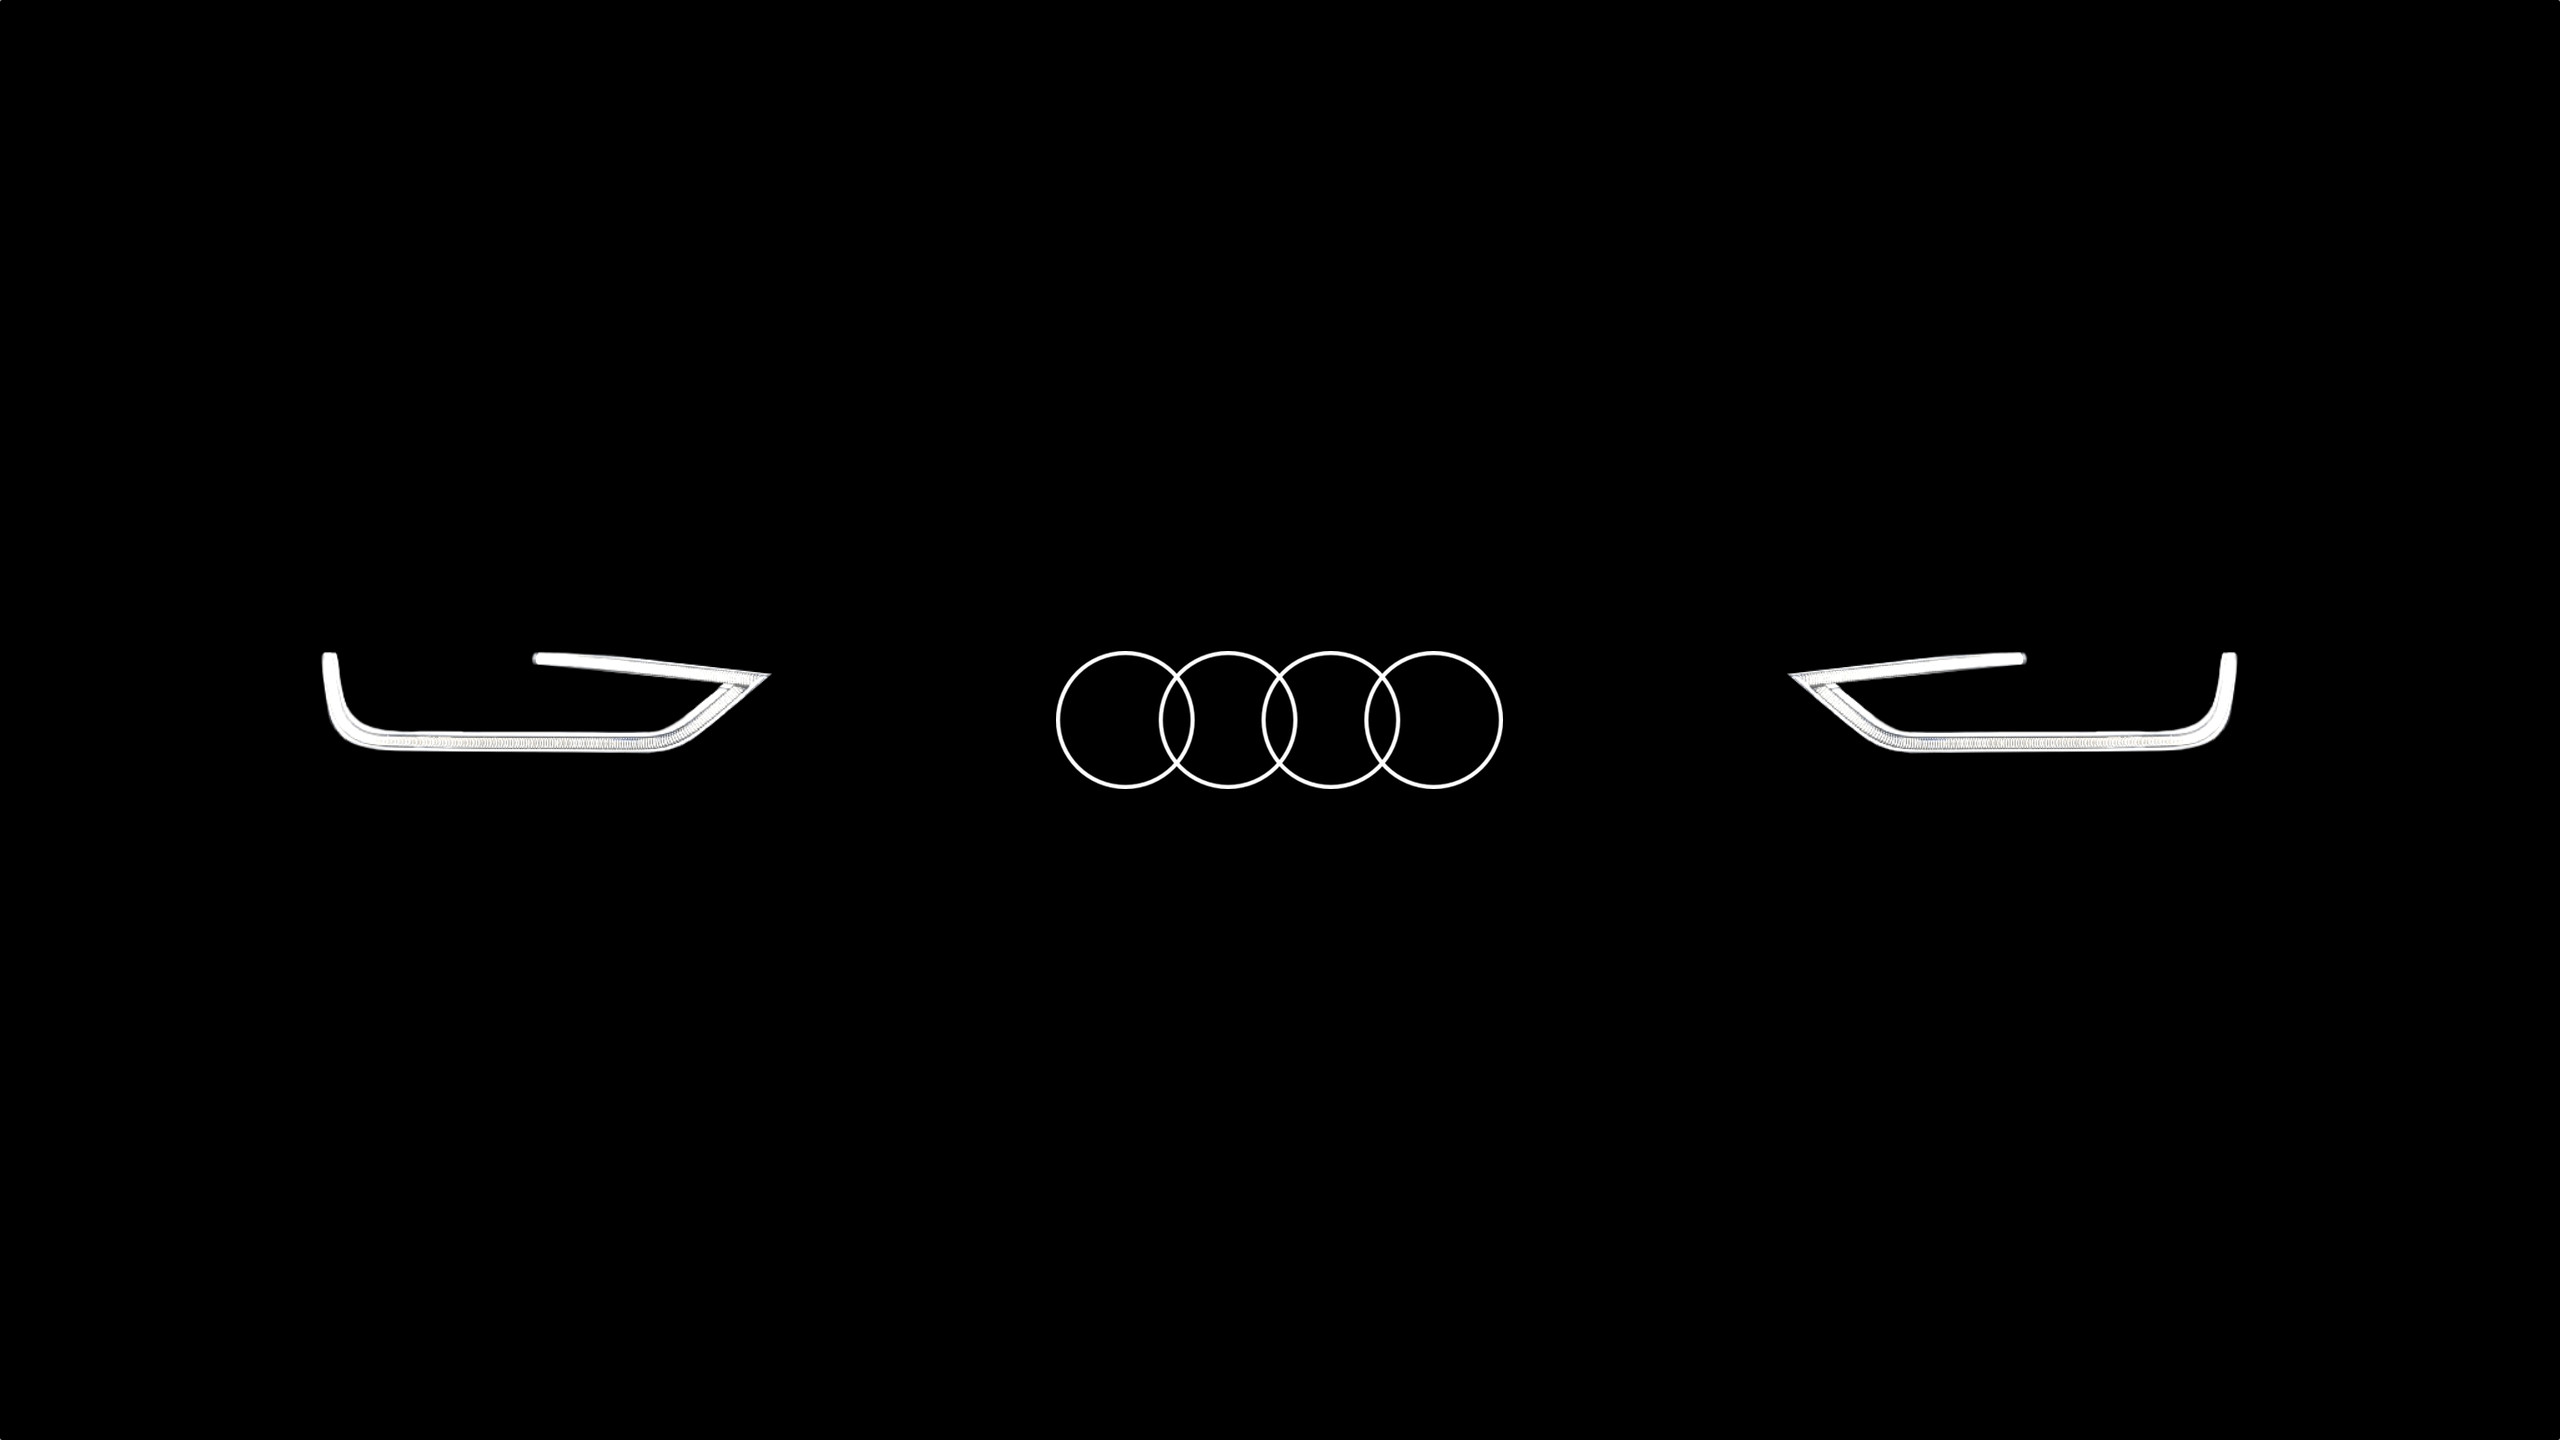 audi logo wallpapers. Black Bedroom Furniture Sets. Home Design Ideas